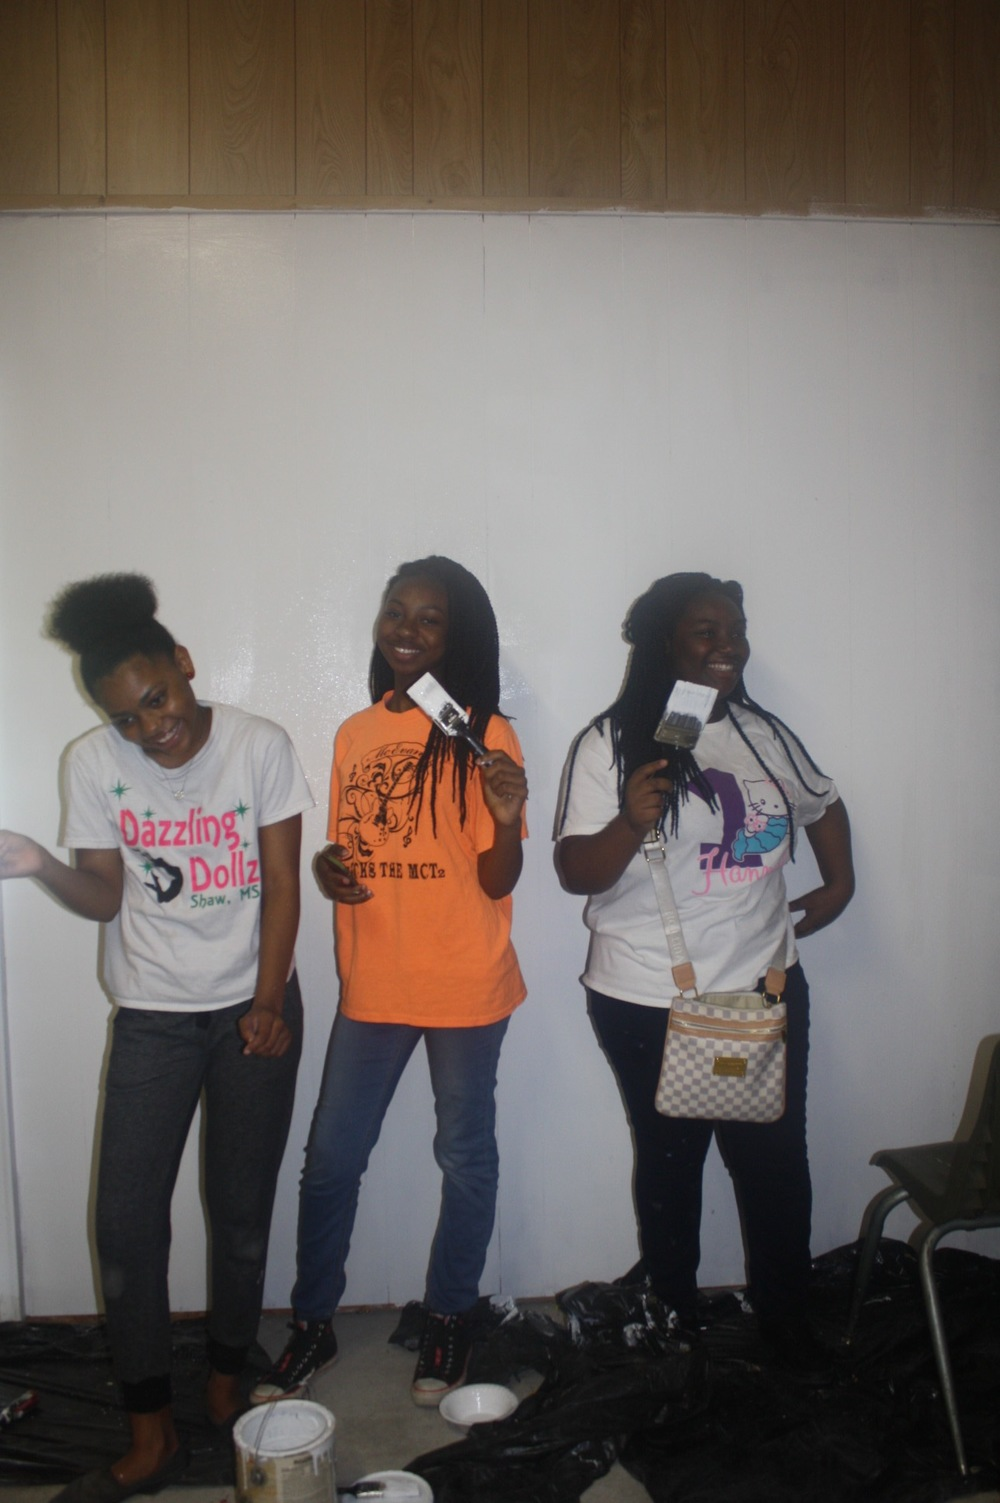 Tiyanna, Makayja, and Tamyra pose while painting